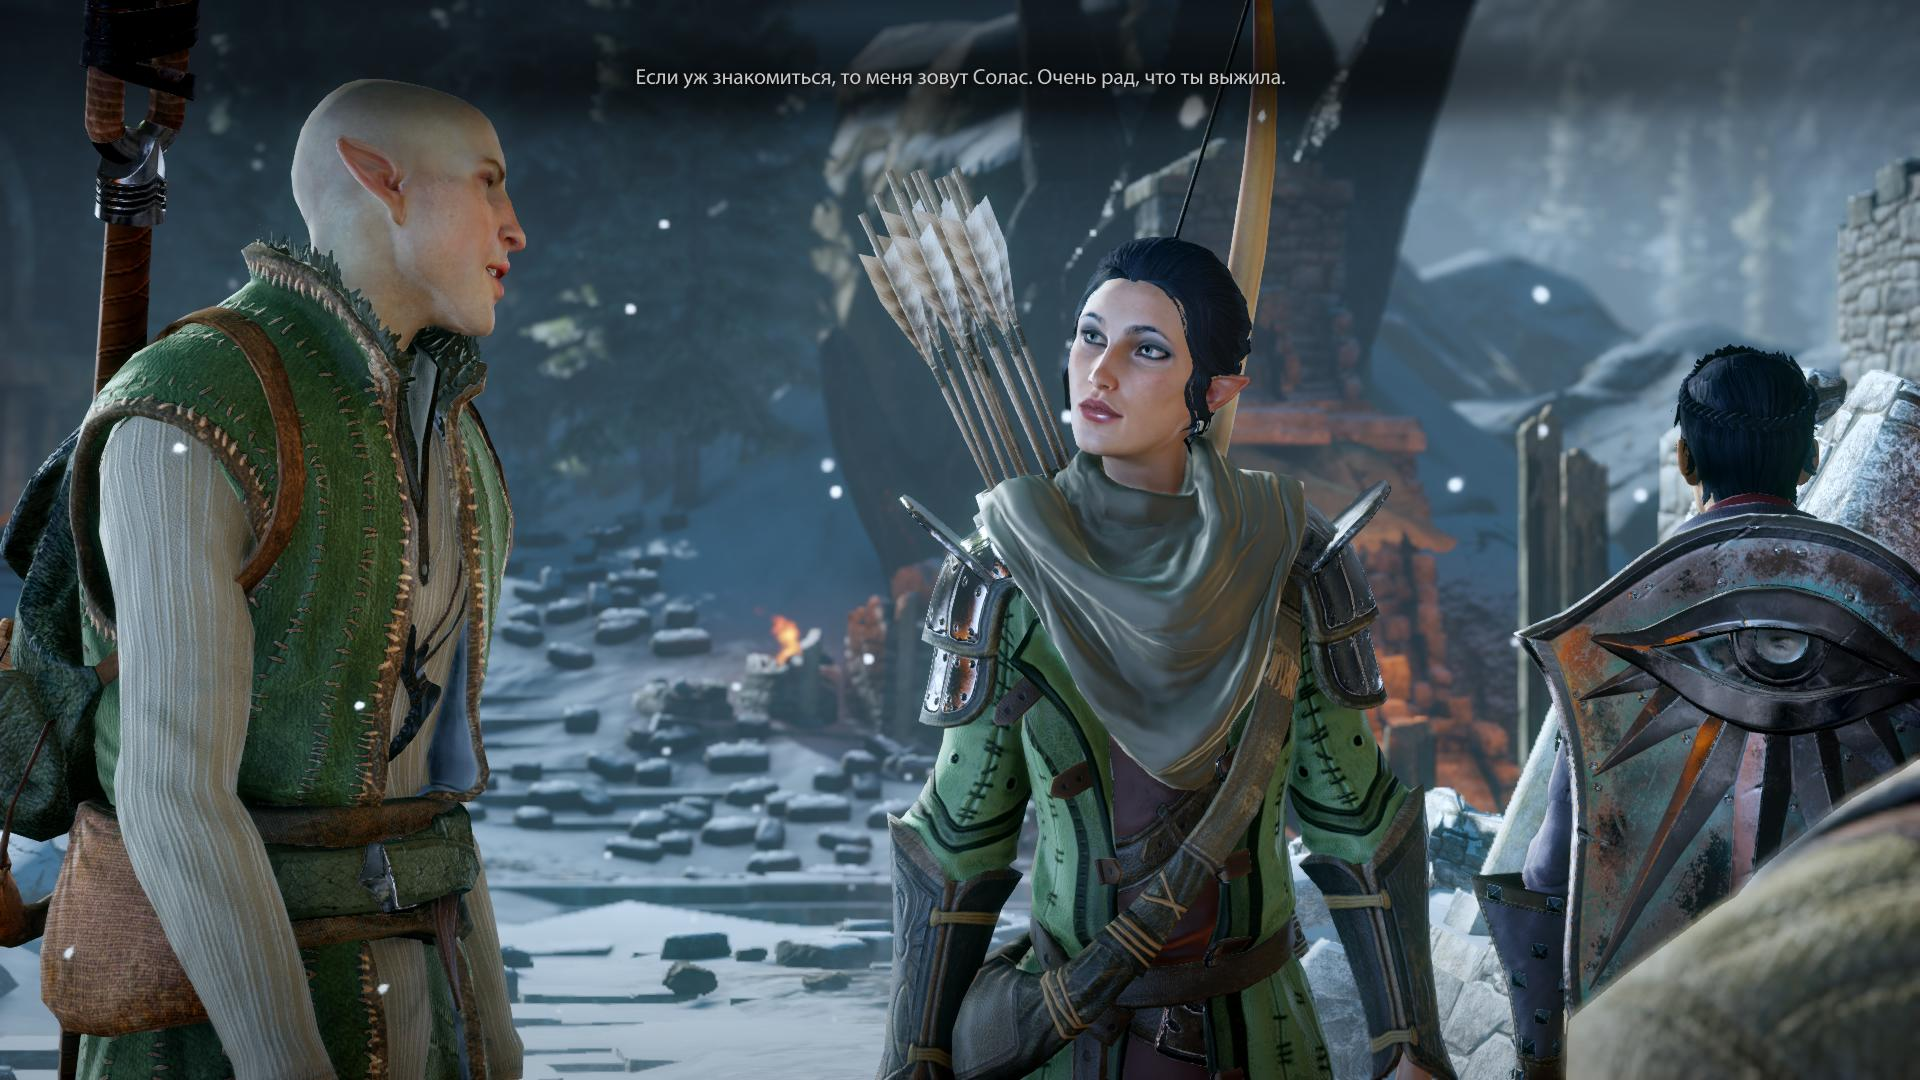 Скачать Dlc Чужак для Dragon Age Inquisition